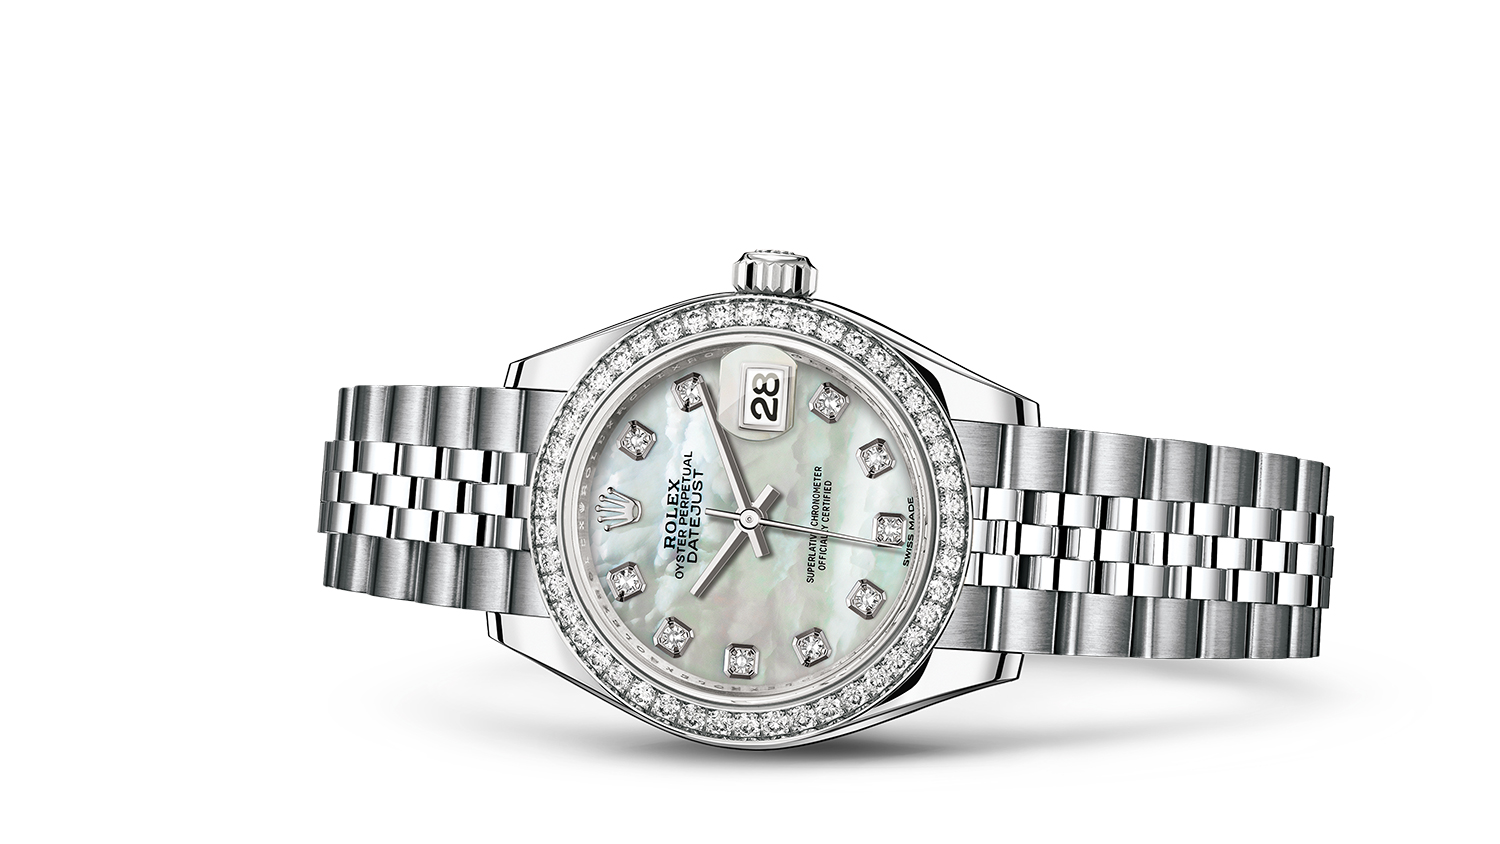 LADY-DATEJUST 28 Oyster, 28 mm, steel, white gold and diamonds